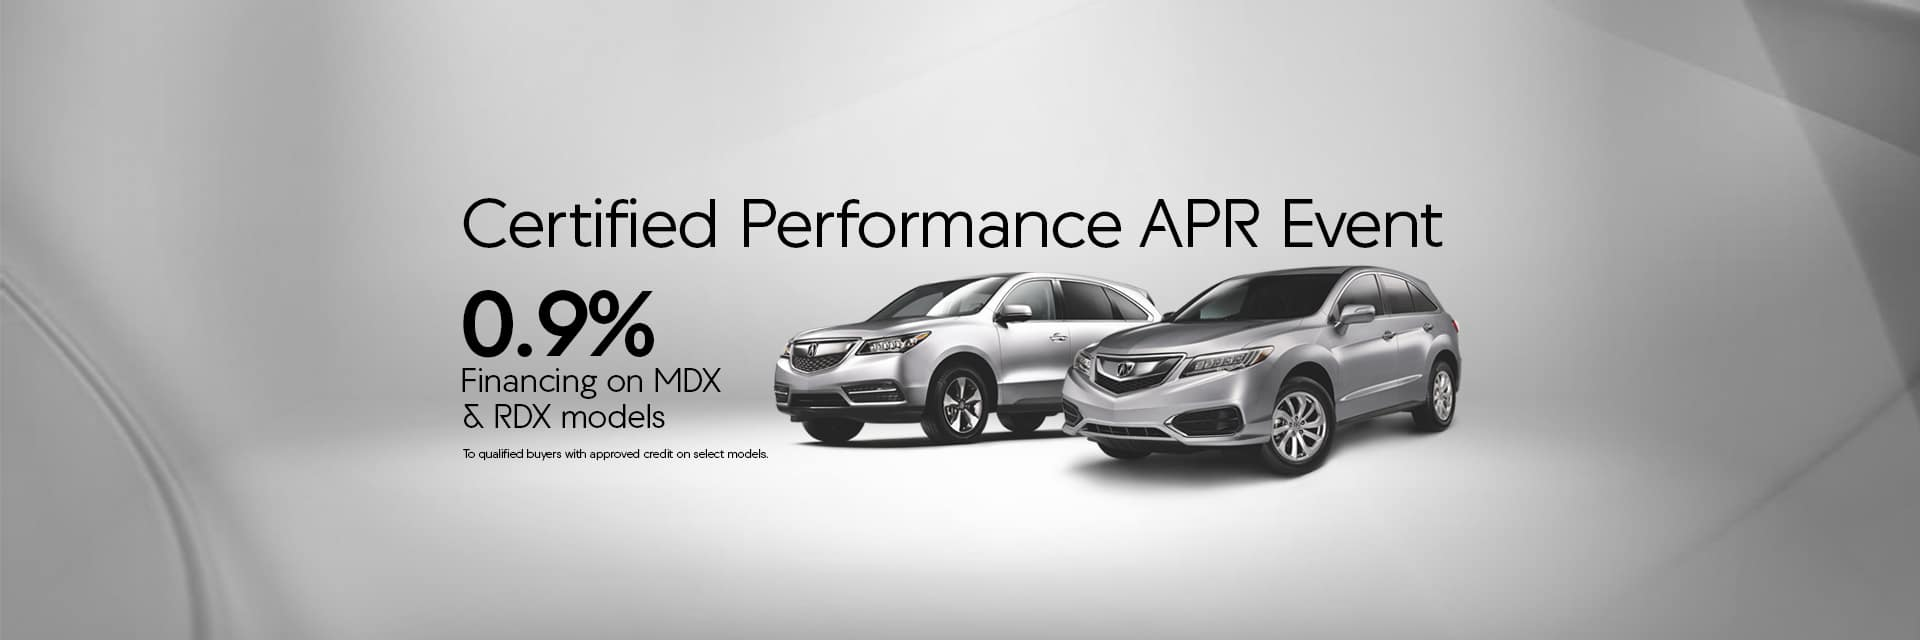 Certified Performance APR Event